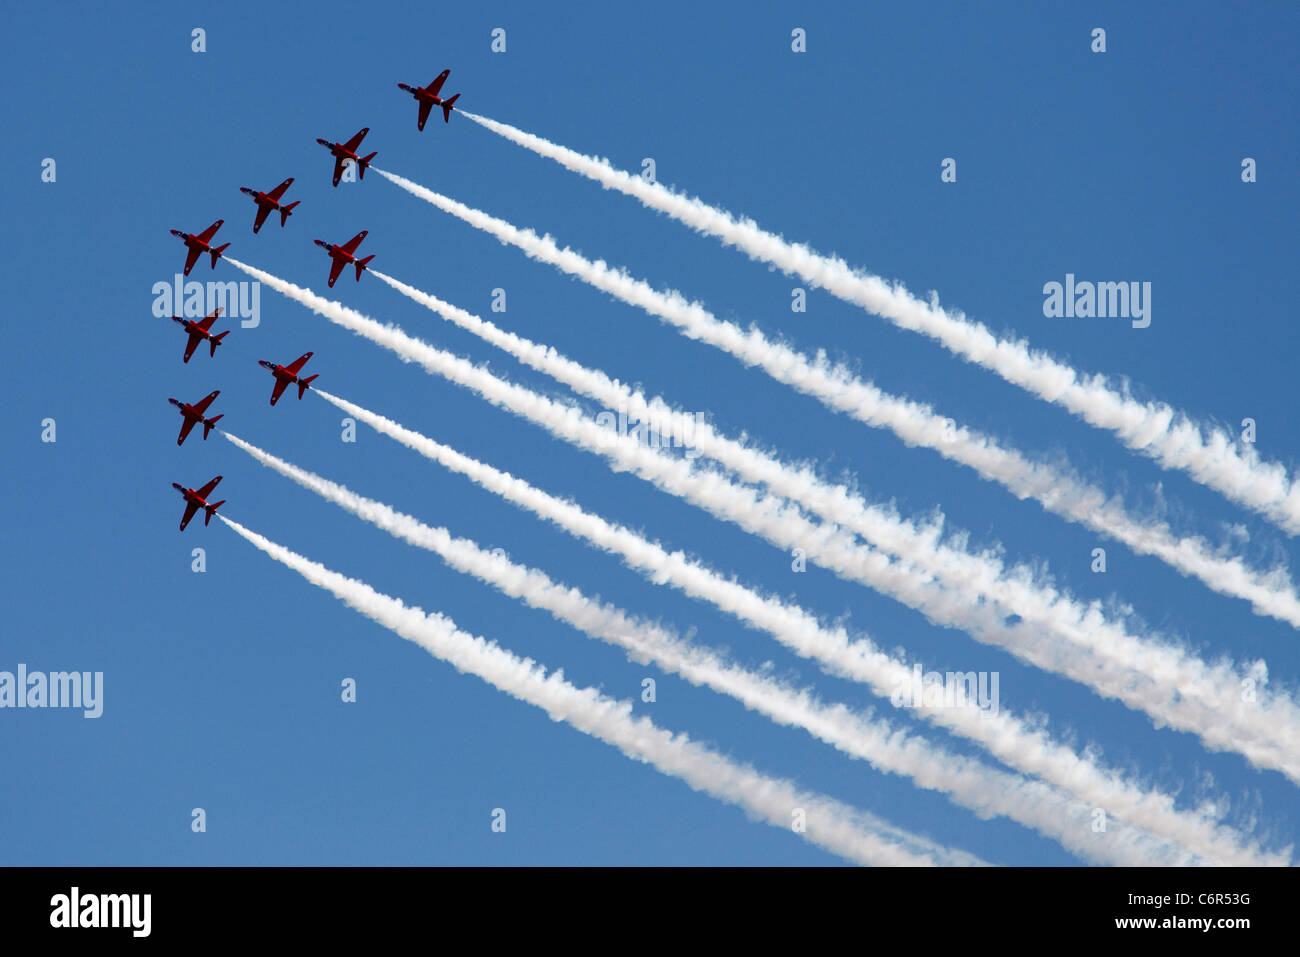 'Red Arrows' flying in 'Big Vixen' formation with white [vapour trails] against cloudless blue sky, - Stock Image